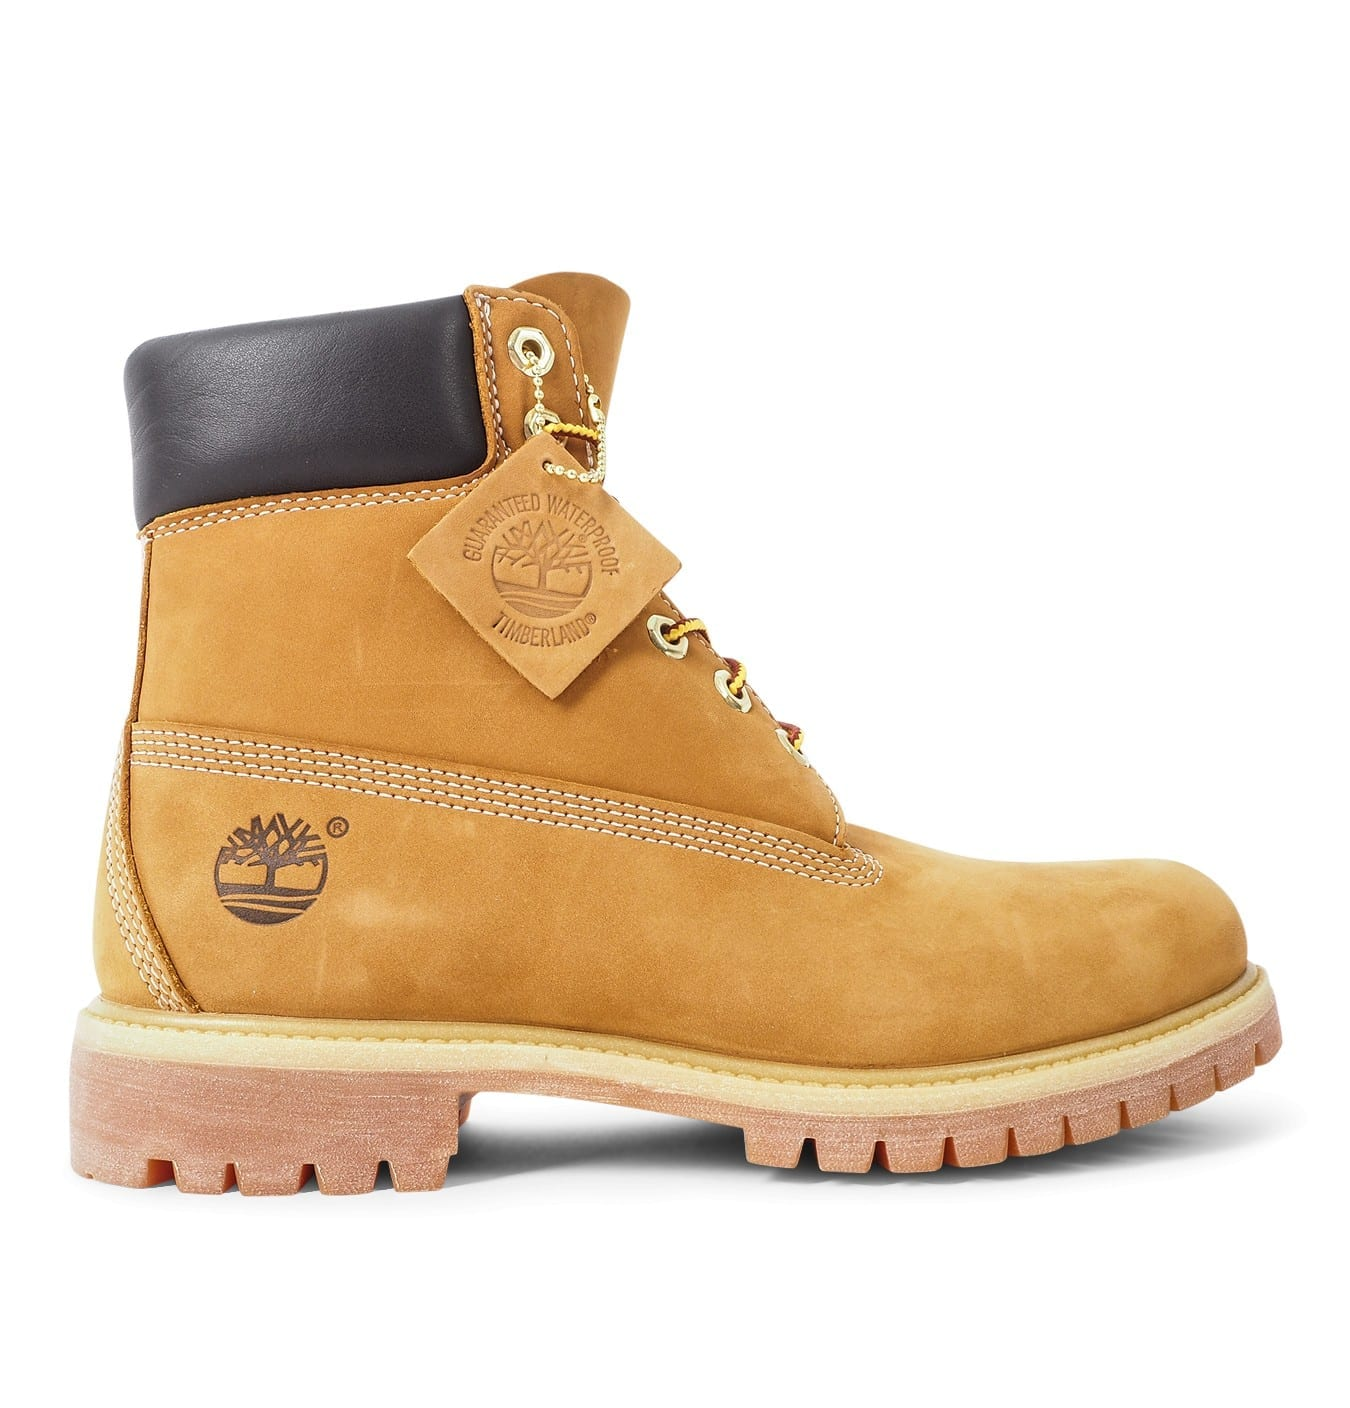 Image of 6-INCH Boot Wheat Yellow